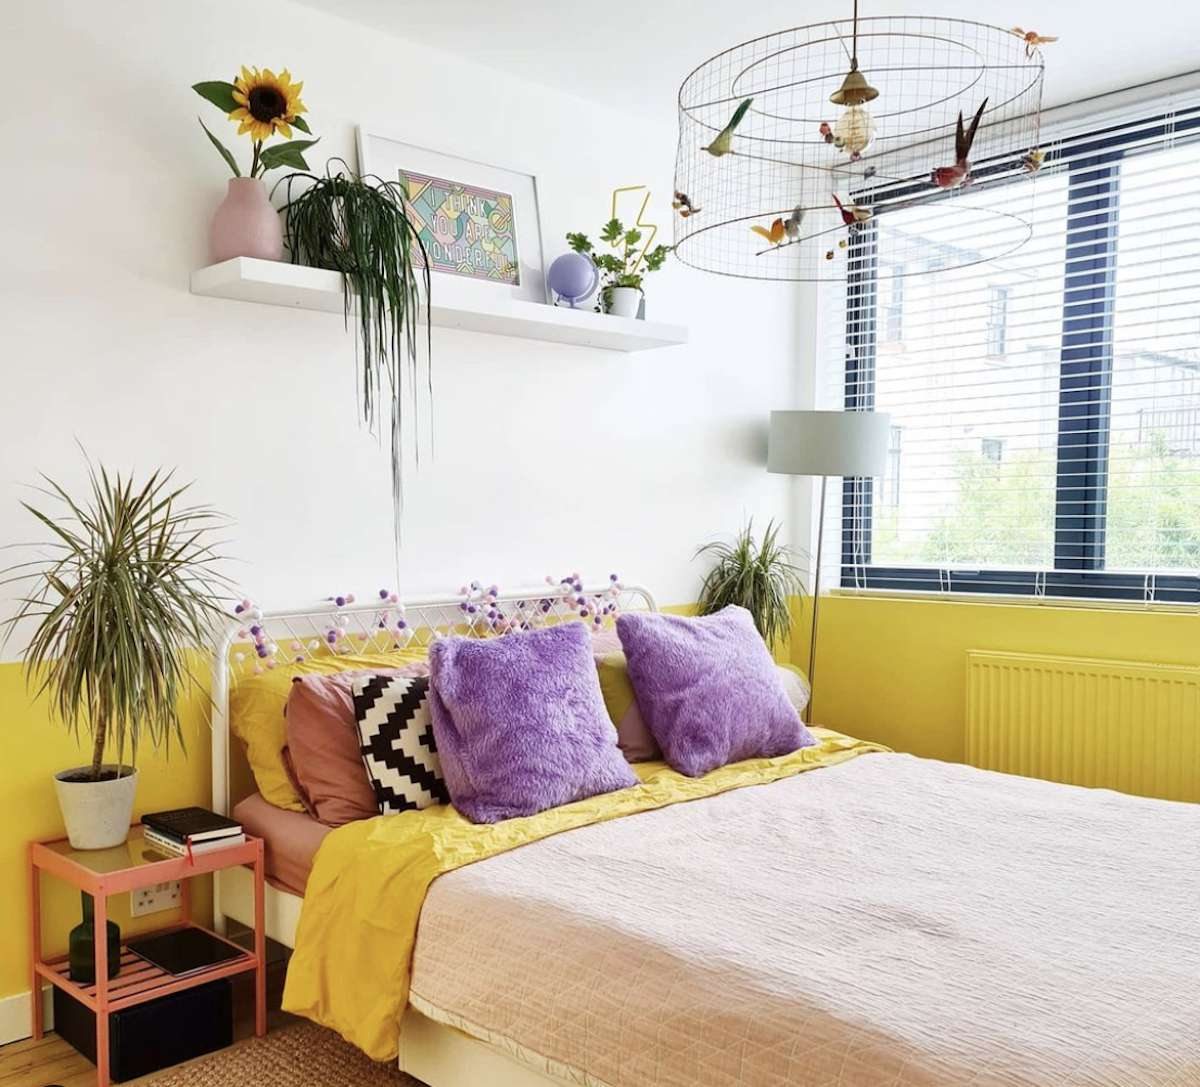 purple and yellow bedroom with white walls, floating shelf with plants and artwork, chandelier that looks like a birds cage